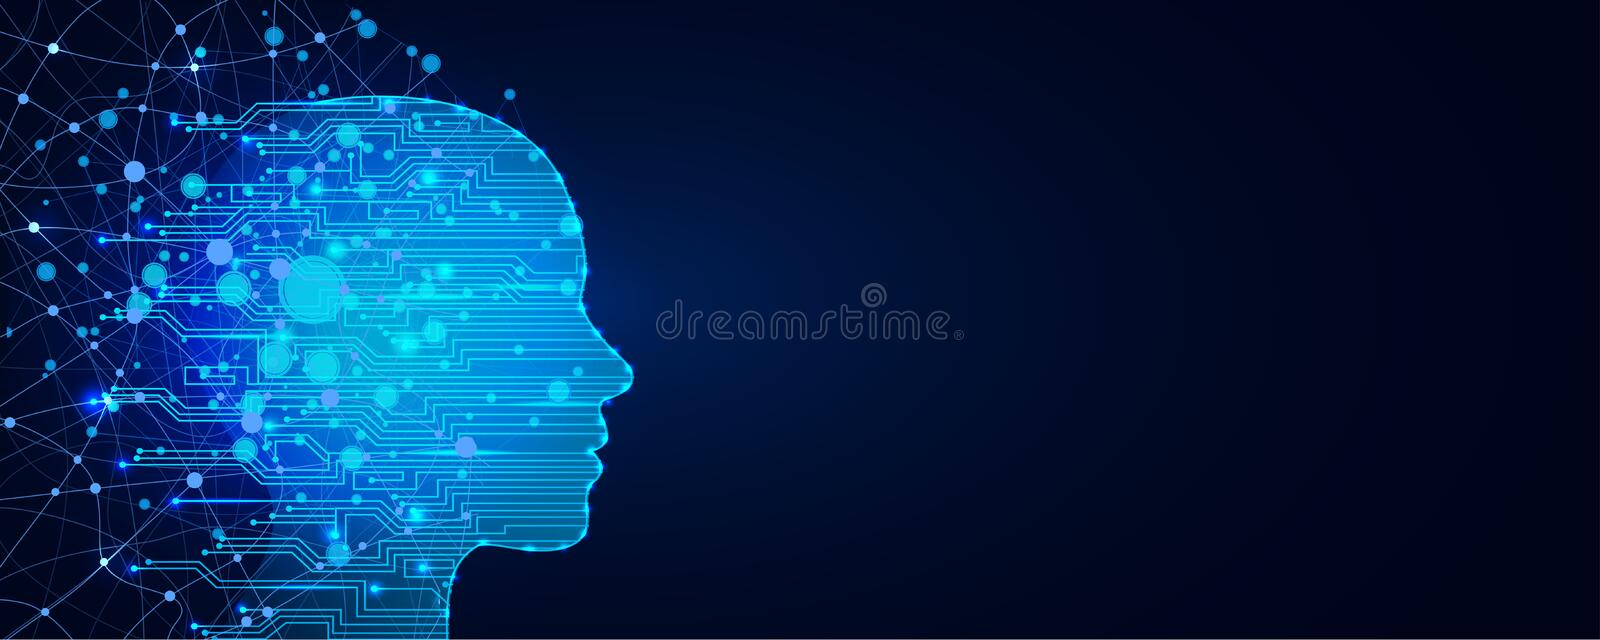 Artificial intelligence concept. Virtual technology web background. Machine learning and cyber mind domination concept royalty free illustration